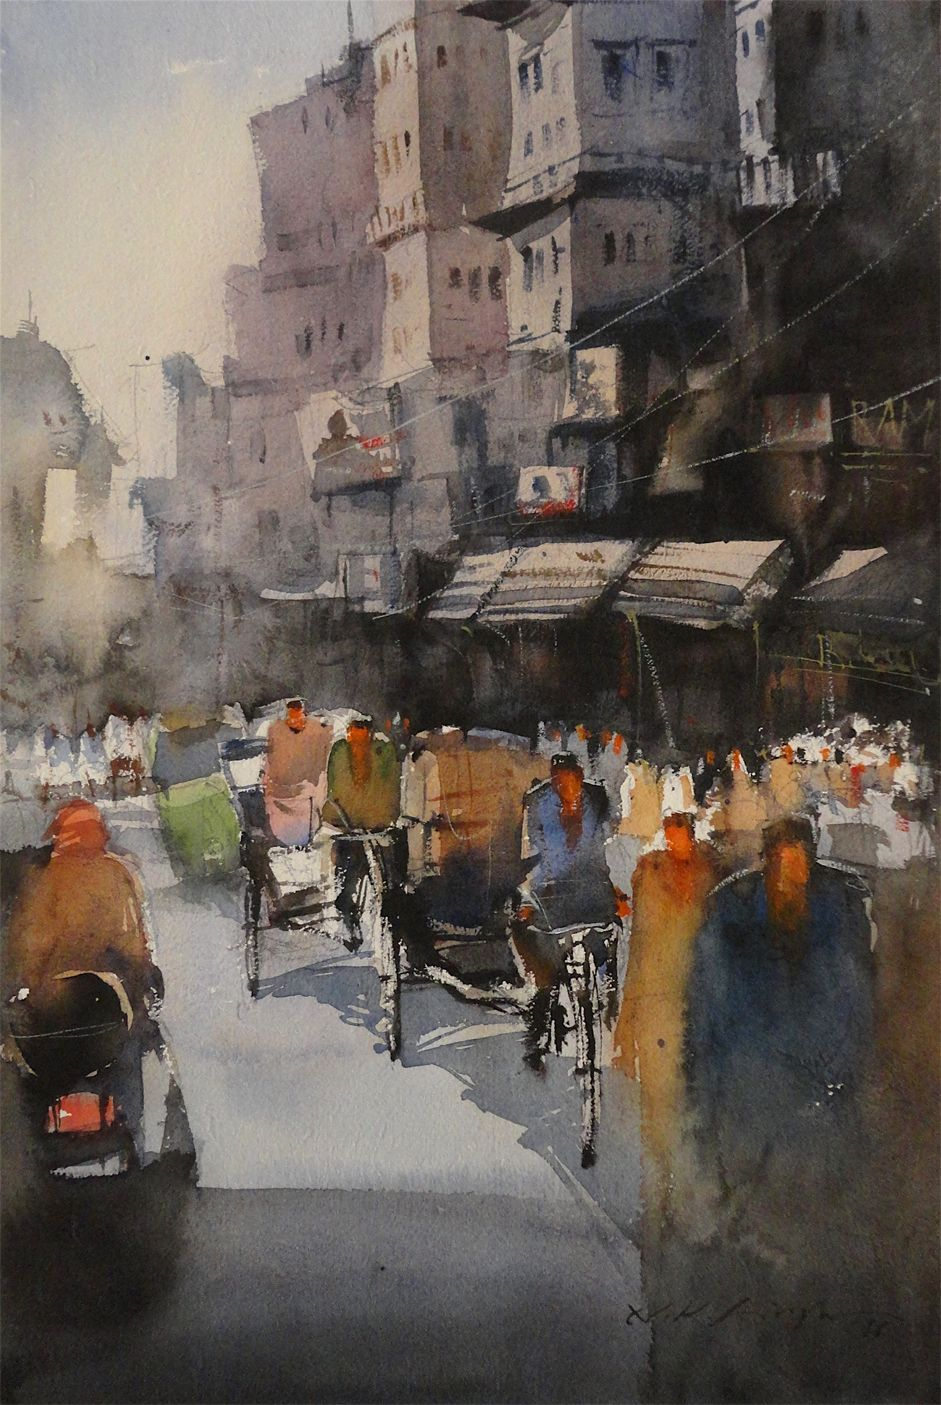 Pin On Original Cityscape Watercolor Painting Online Art Gallery